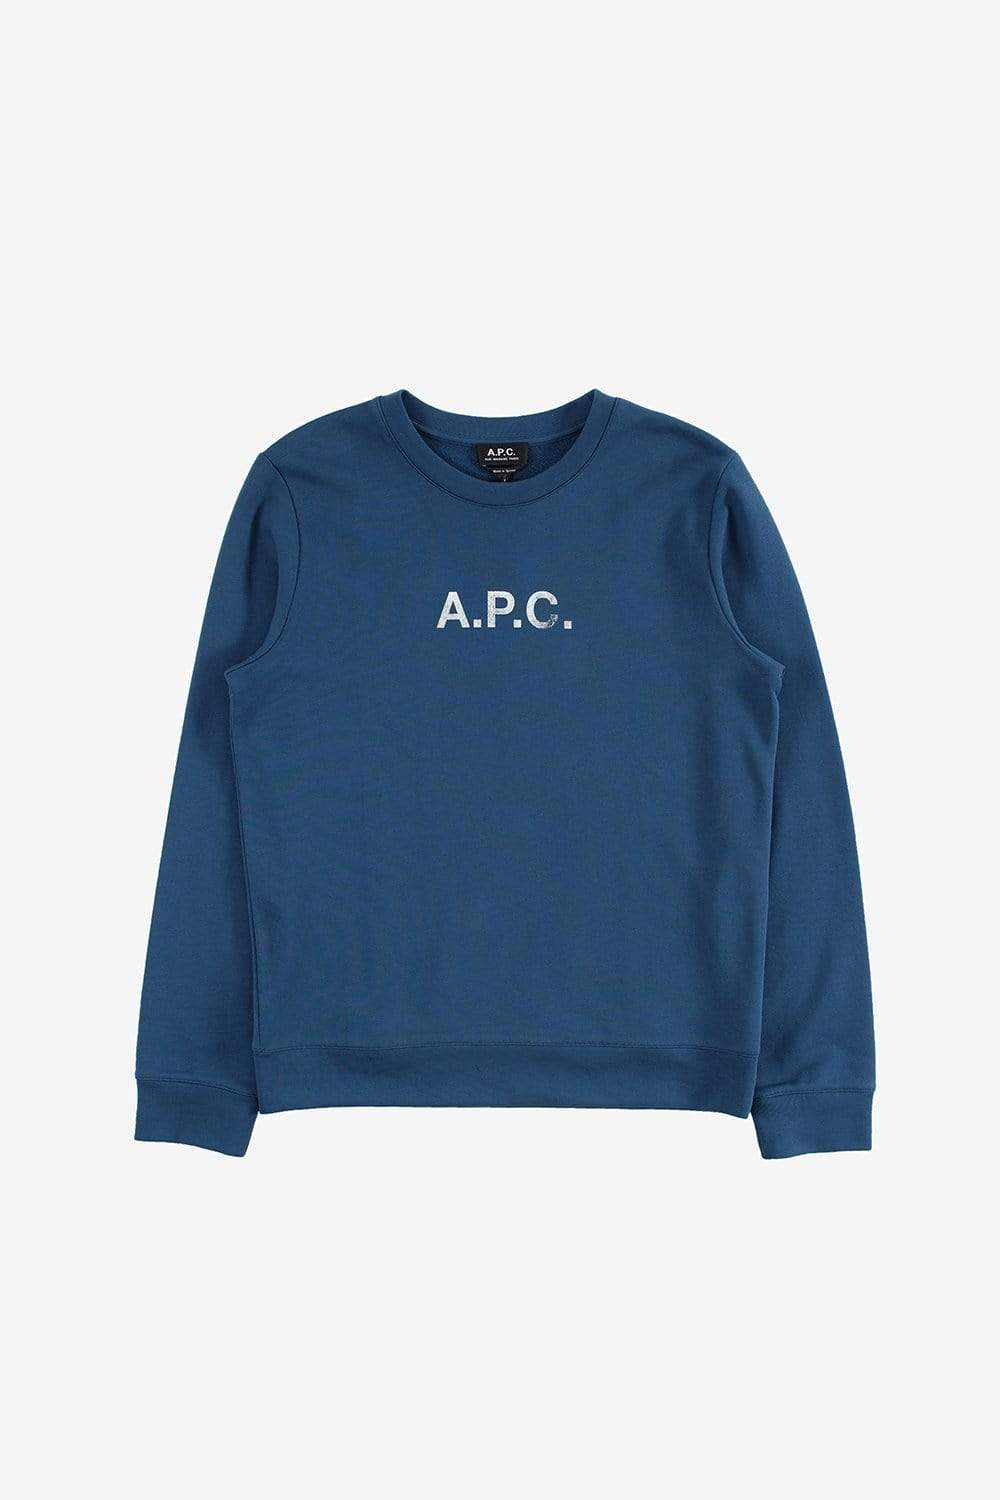 A.P.C. Apparel Stamp Sweatshirt